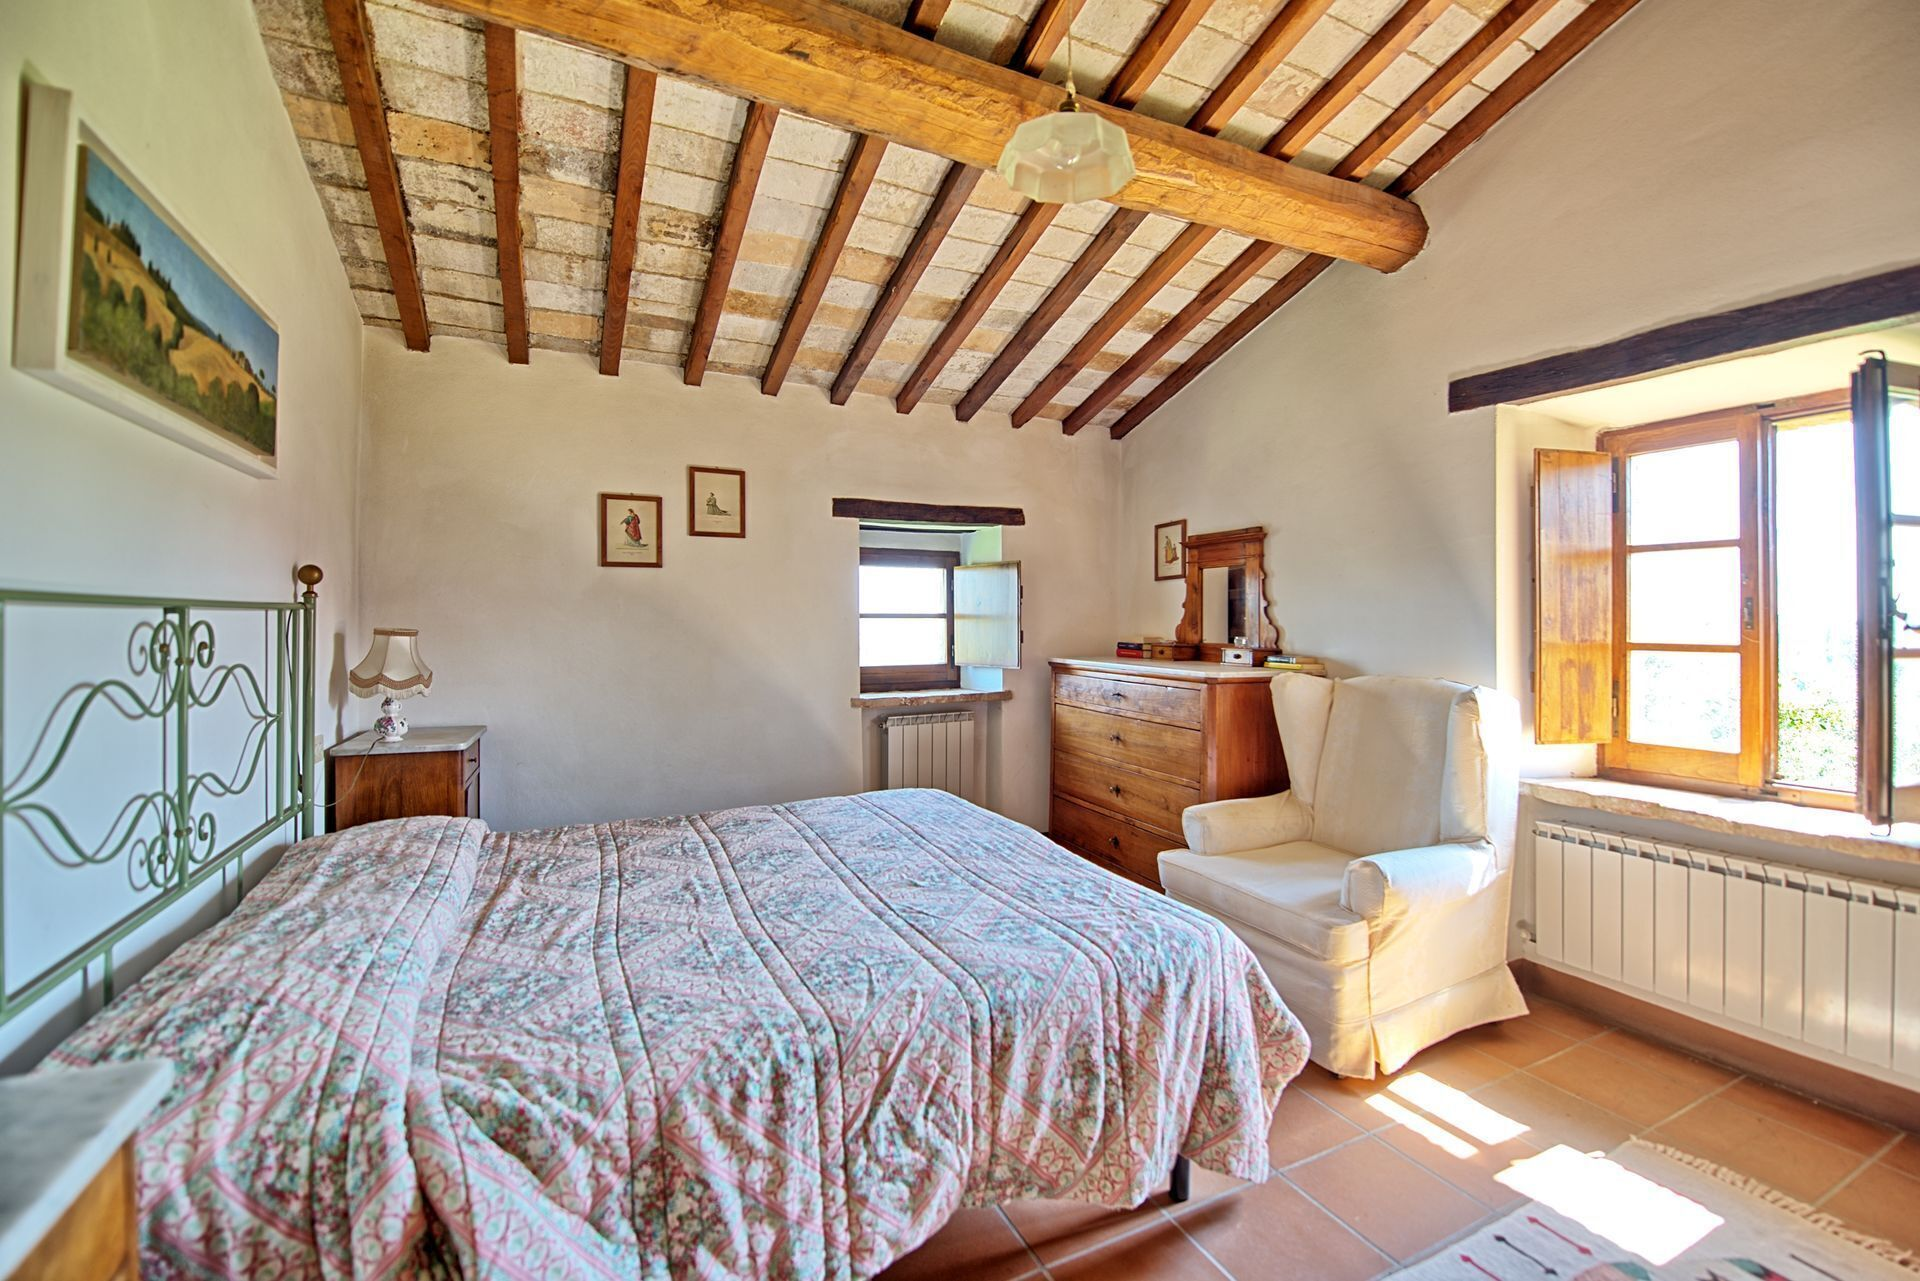 Villa Sarteano – Country Villa With Swimming Pool in Orcia Valley, Tuscany